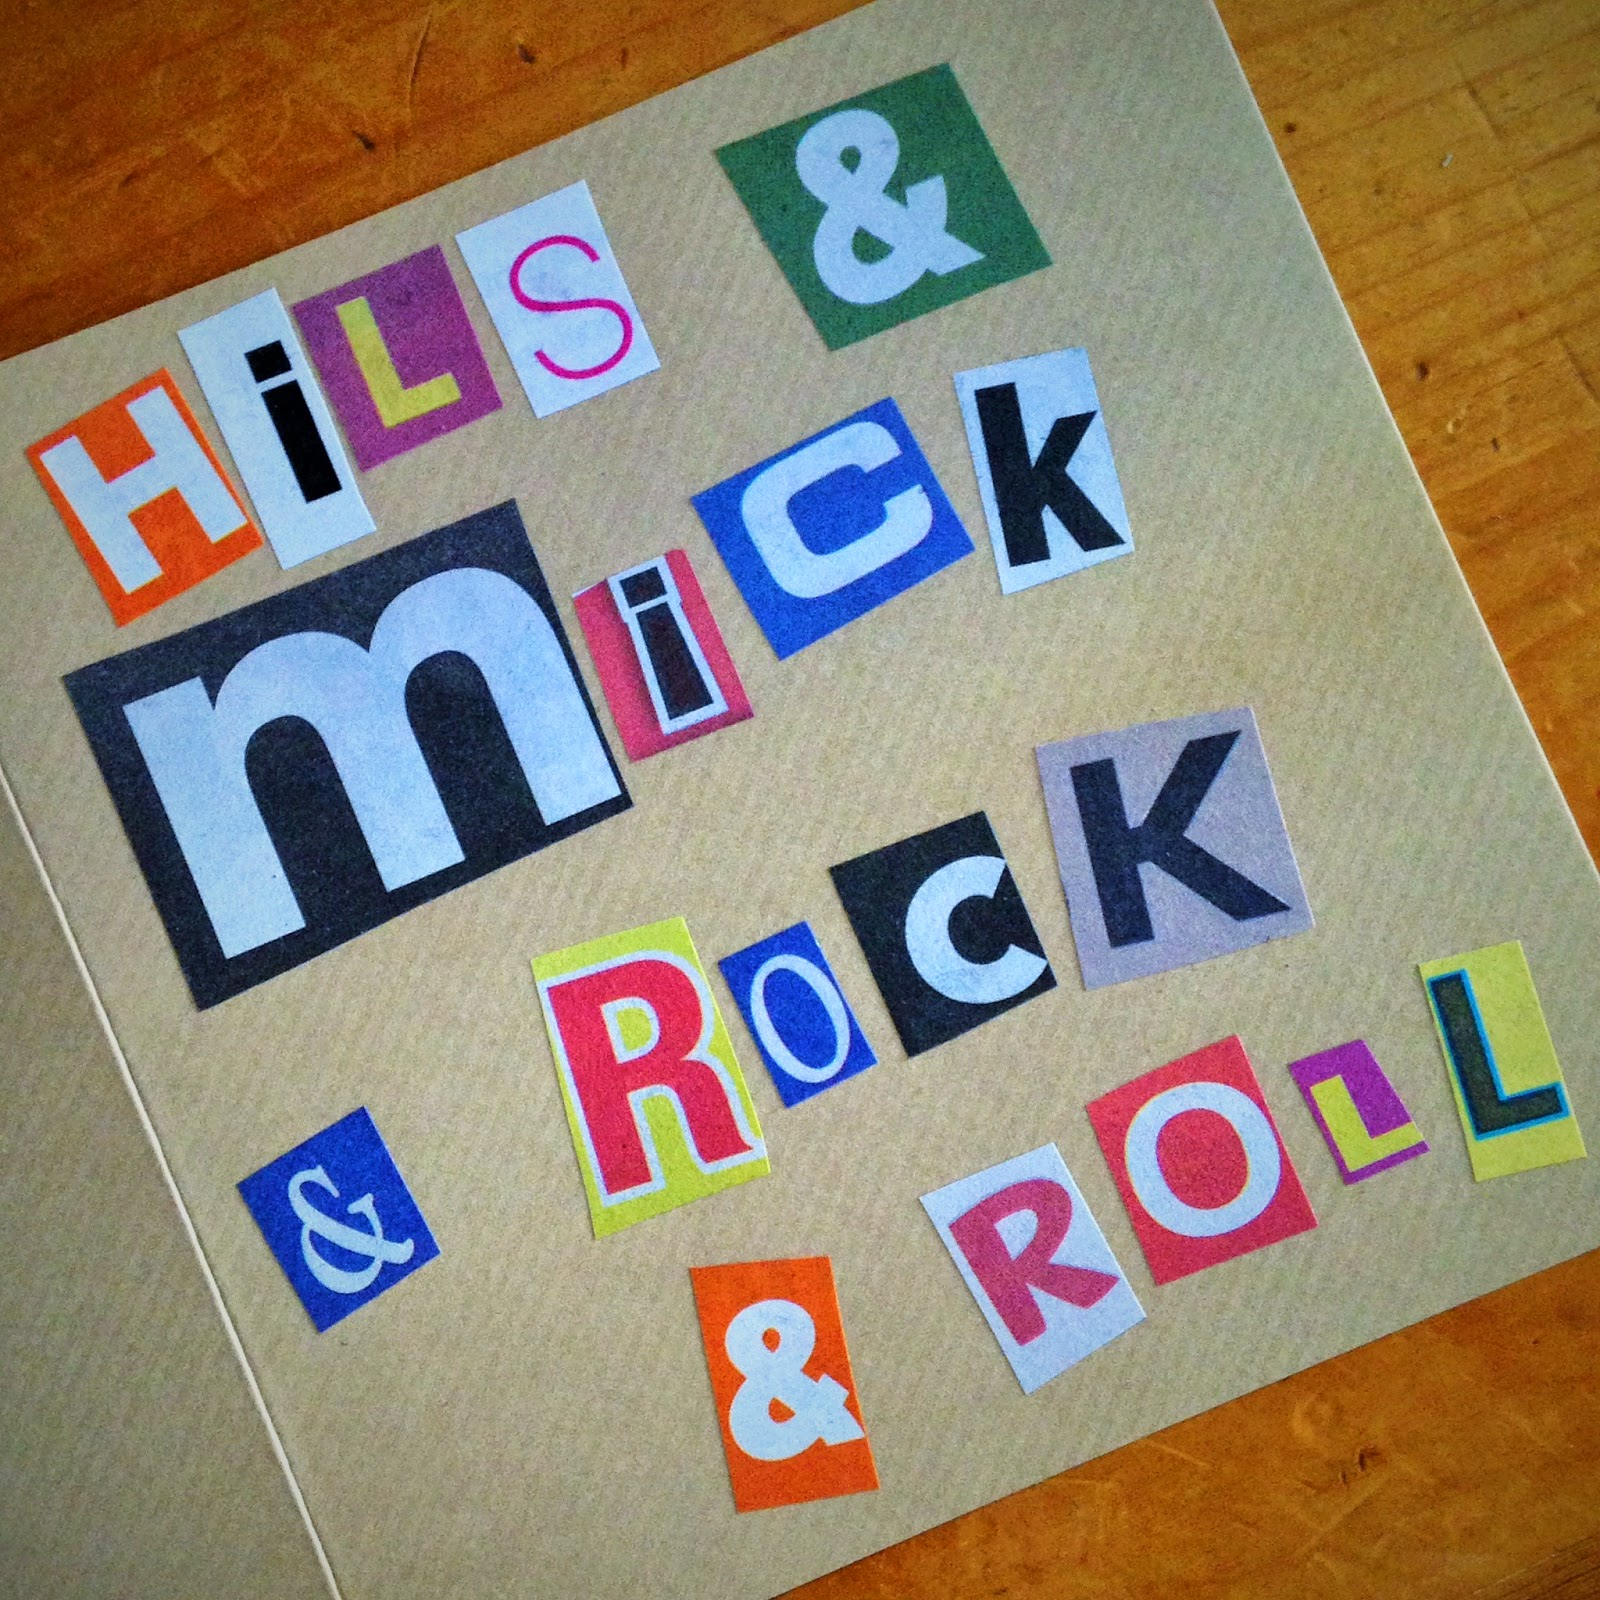 handmade card hils and mick and rock and roll